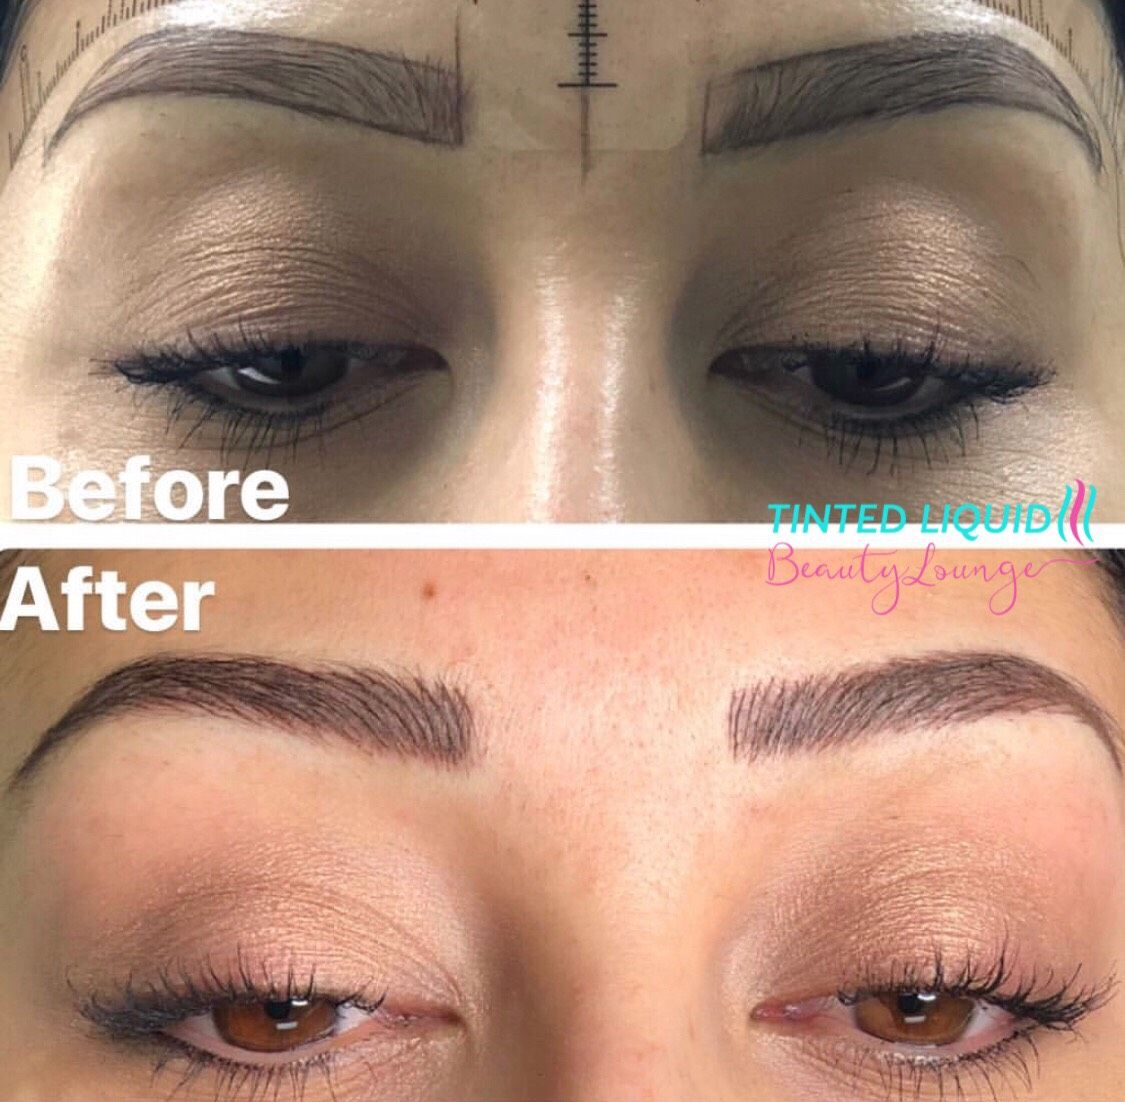 Eyebrow Microblading Best eyebrow products, Microblading